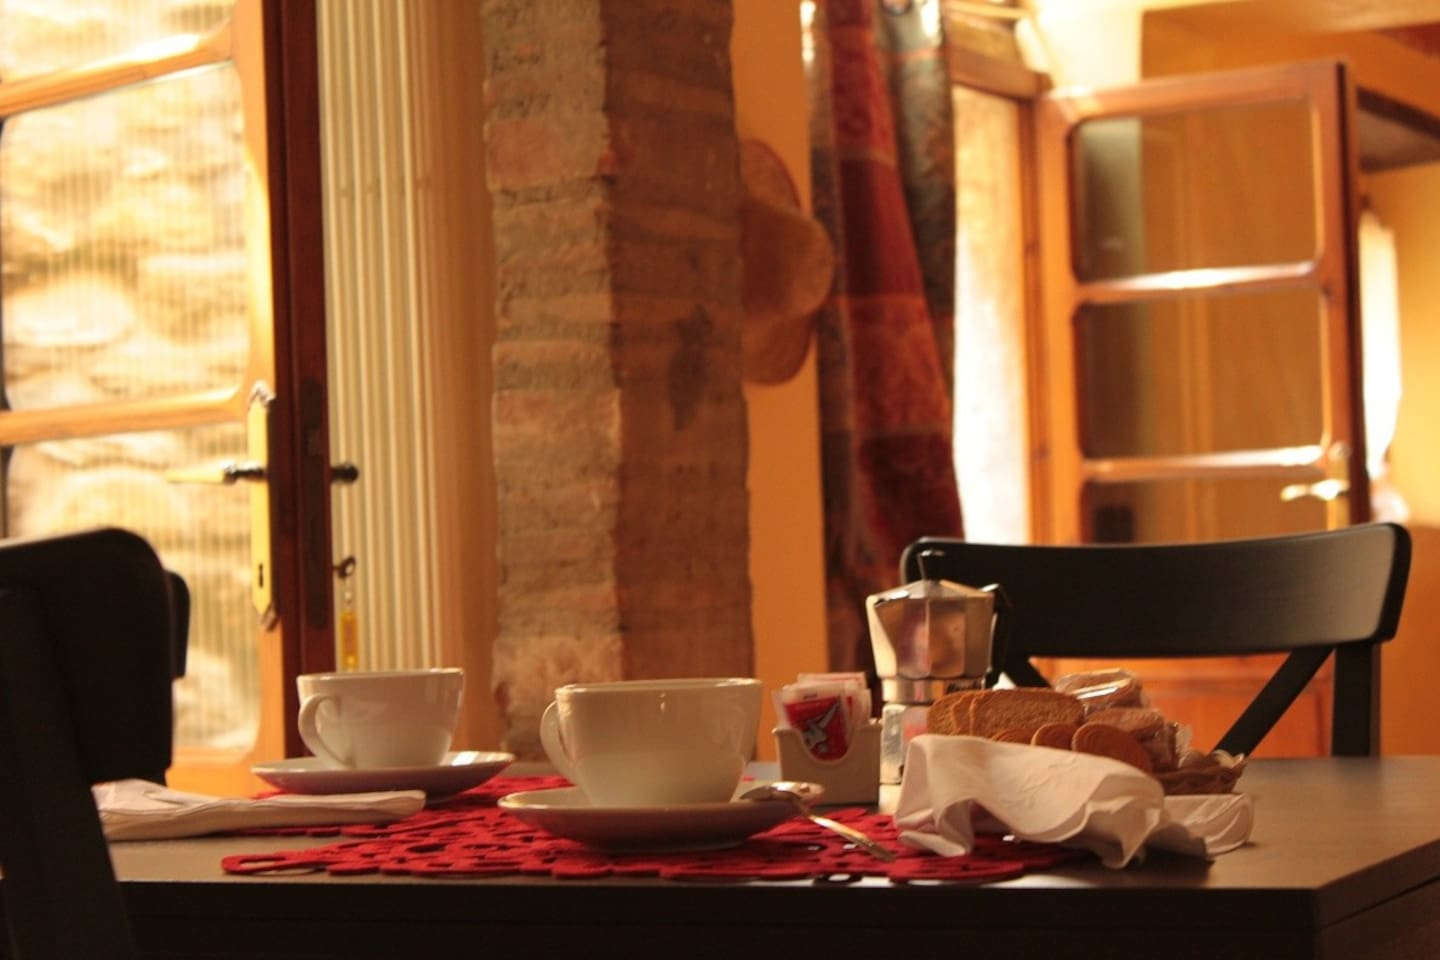 Breakfast - In Tuscany, lovely apartment with garden, views and convenient or restaurants etc